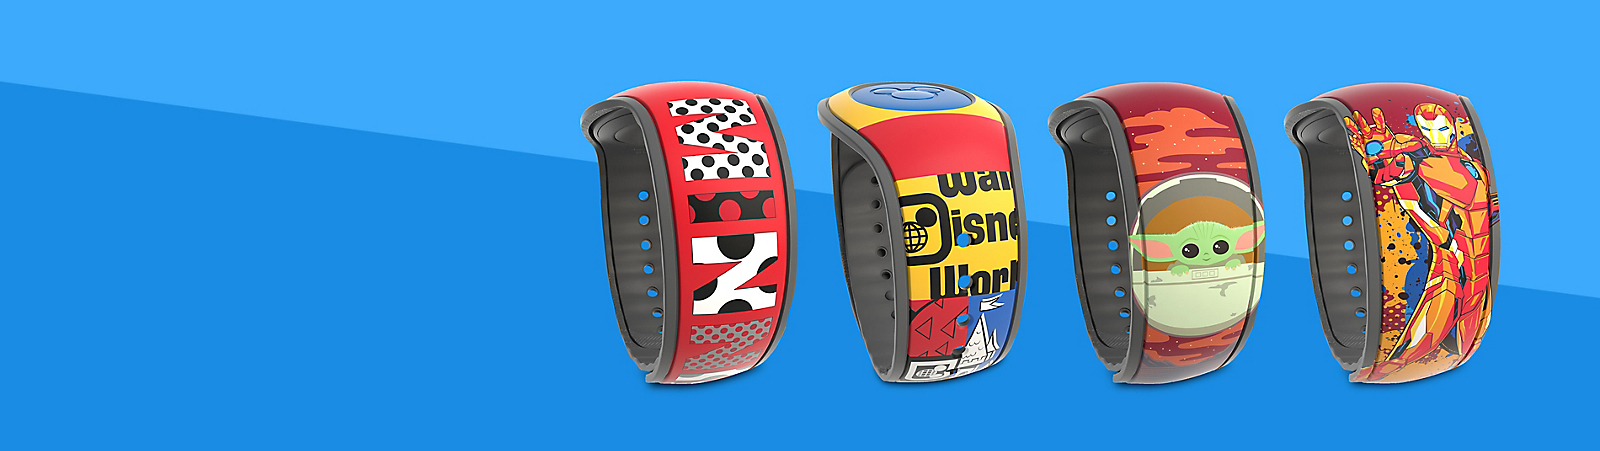 MagicBand featuring artworks inspired by Minnie Mouse; MagicBand featuring artworks inspired by Walt Disney World Dated 2021 Collection; MagicBand featuring The Child from The Mandalorian; MagicBand featuring Iron Man